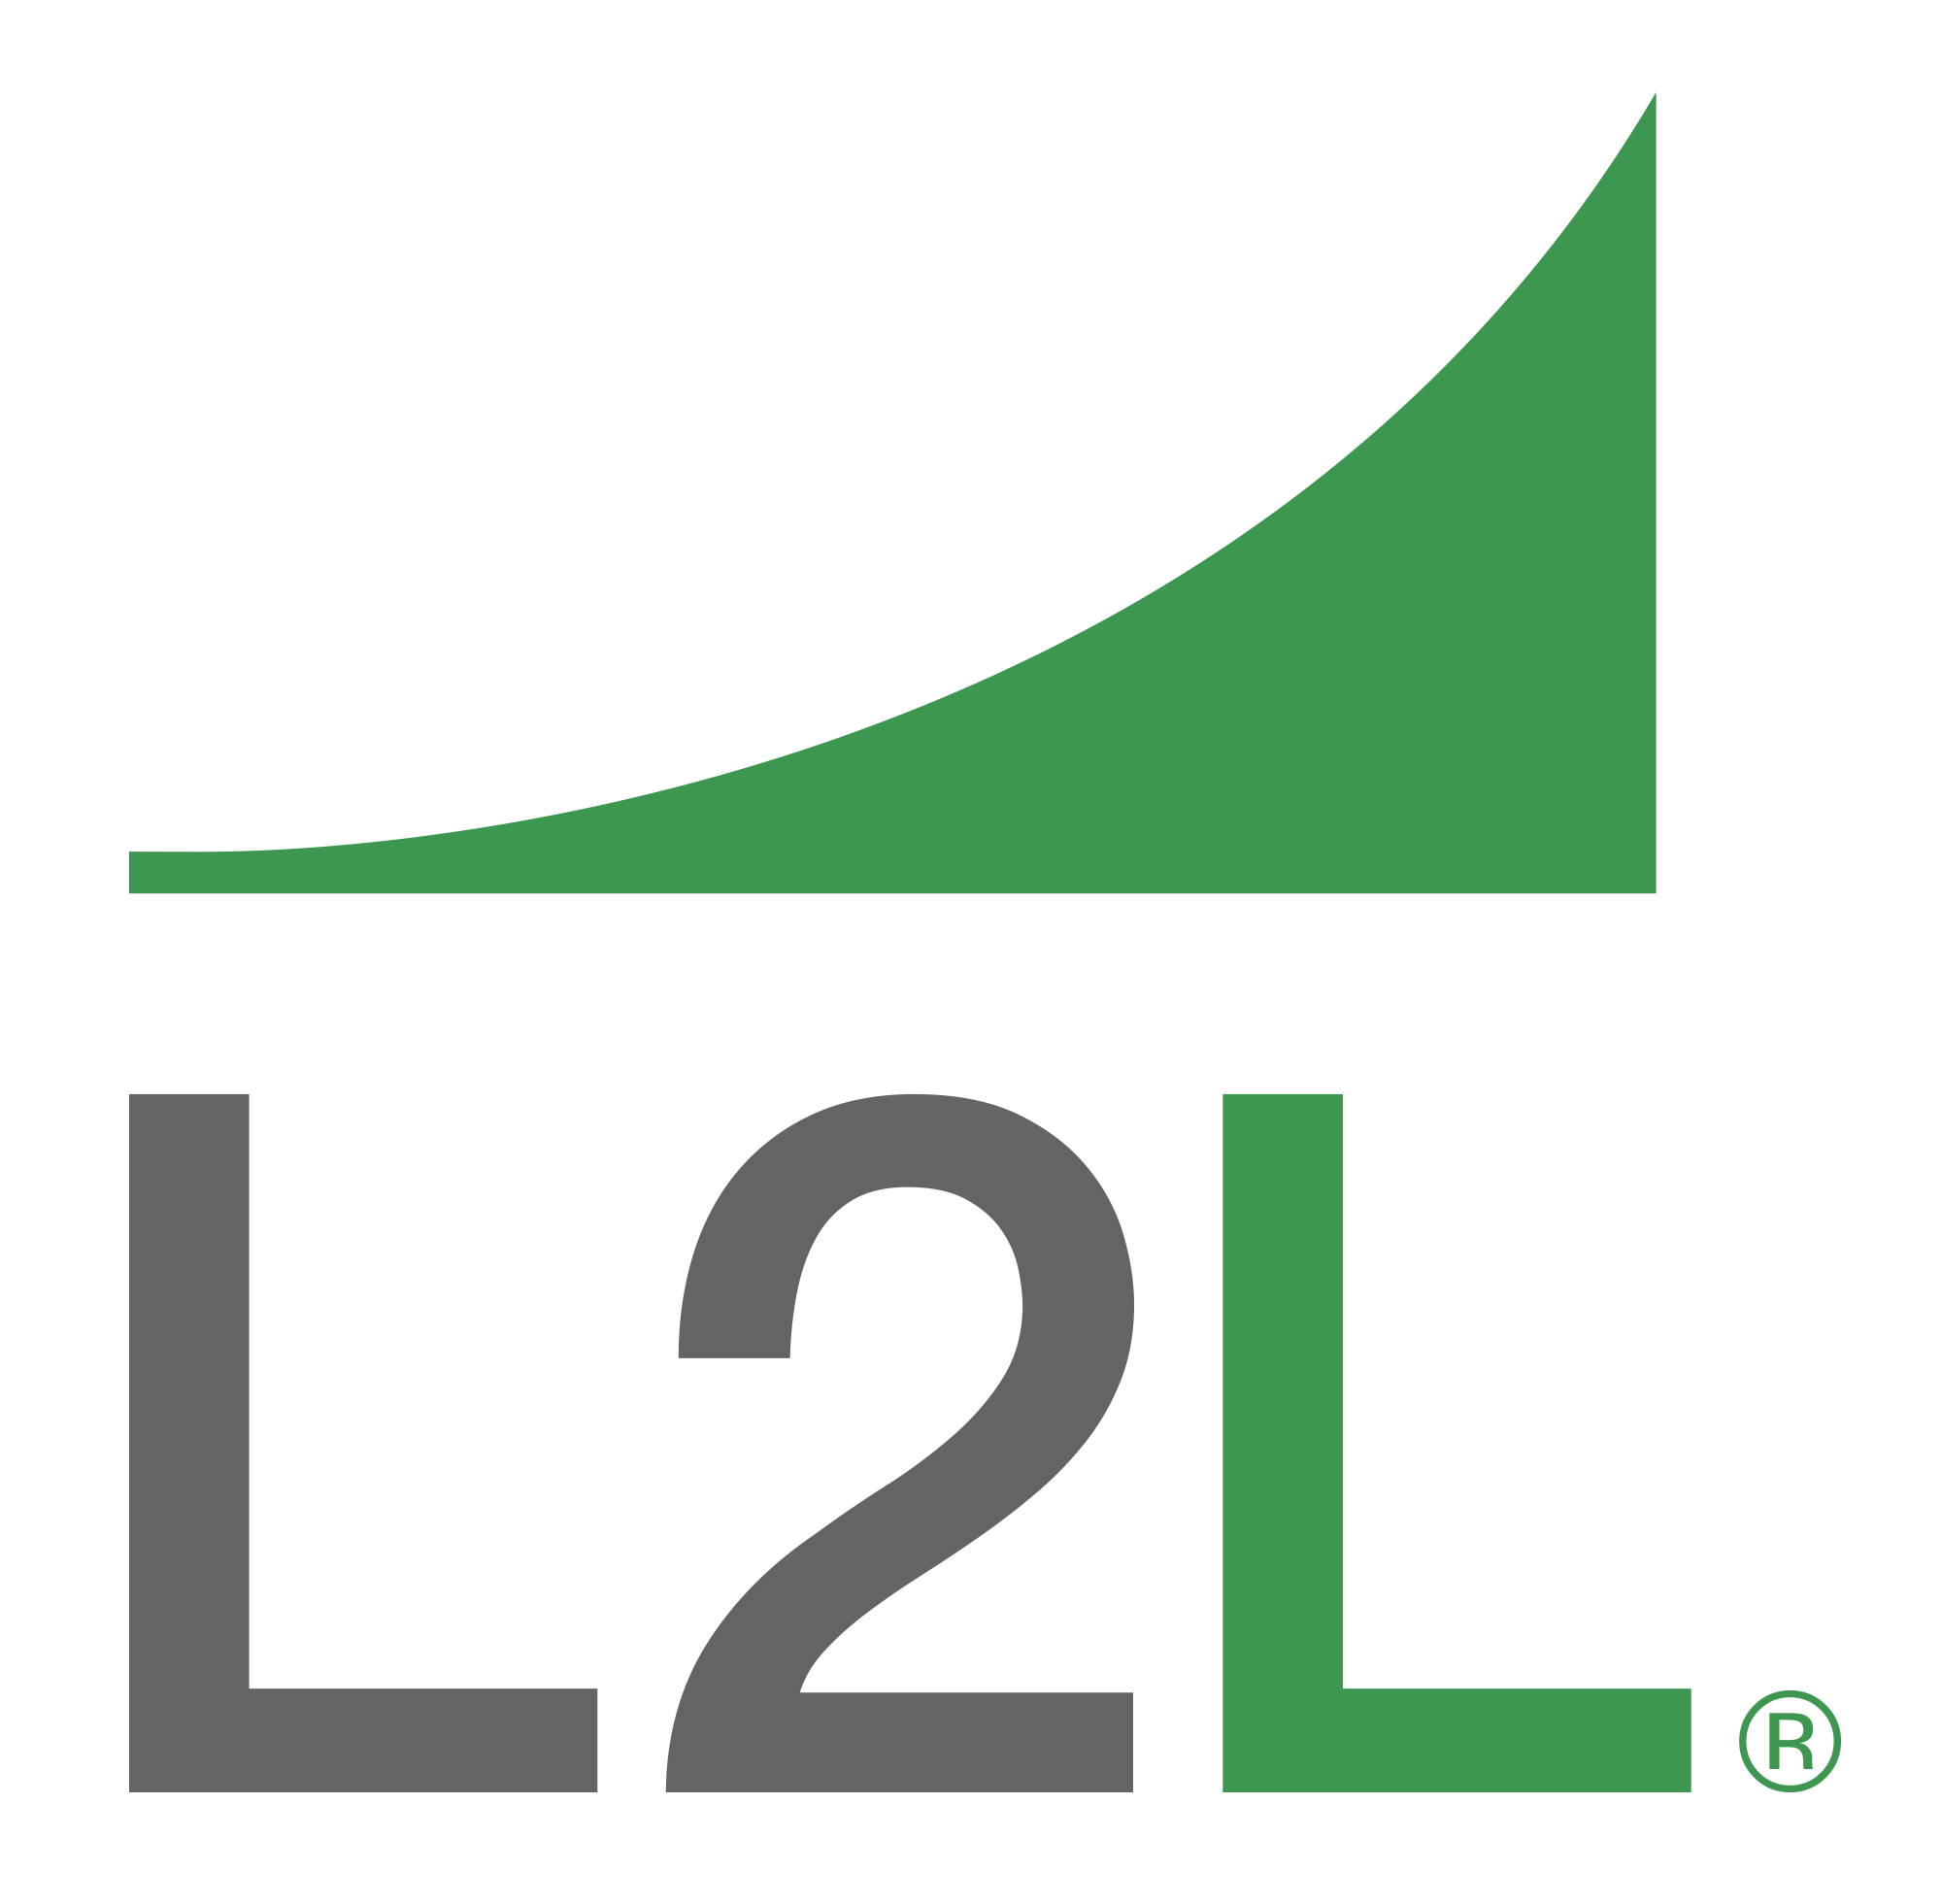 L2L-logo-highresolution